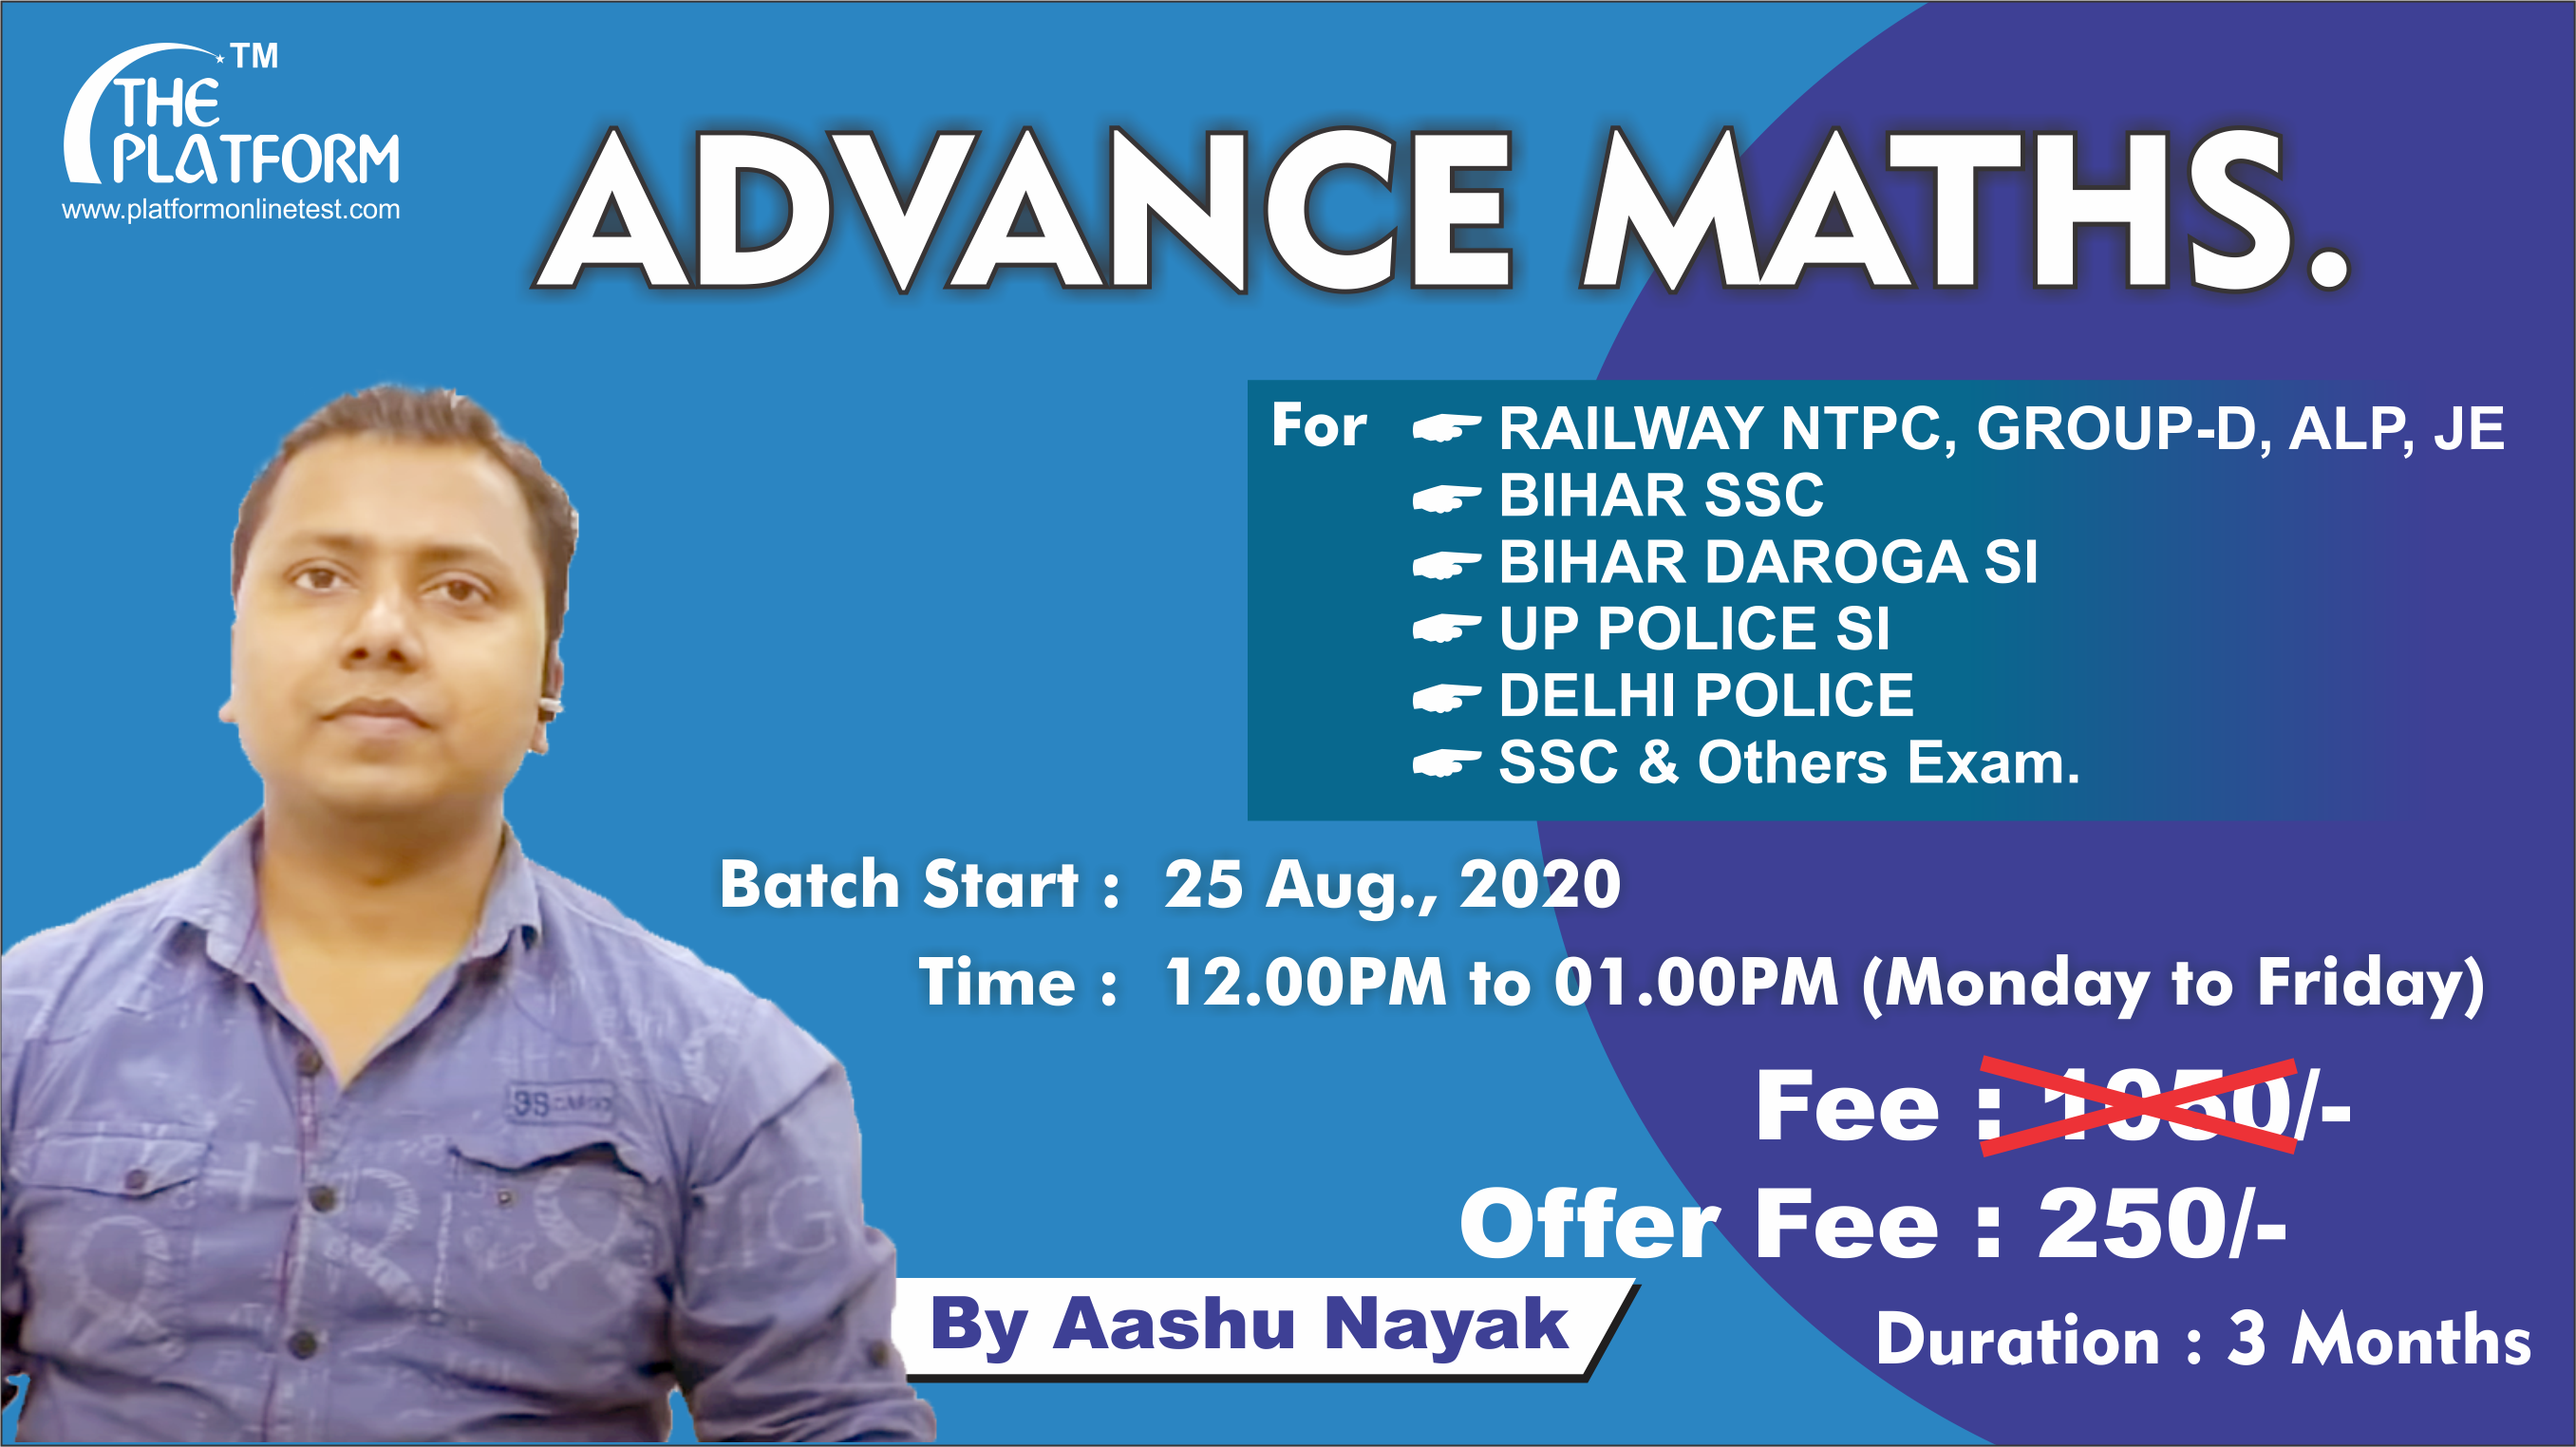 25-ADVANCE MATHS. By Aashu Nayak, Session-01